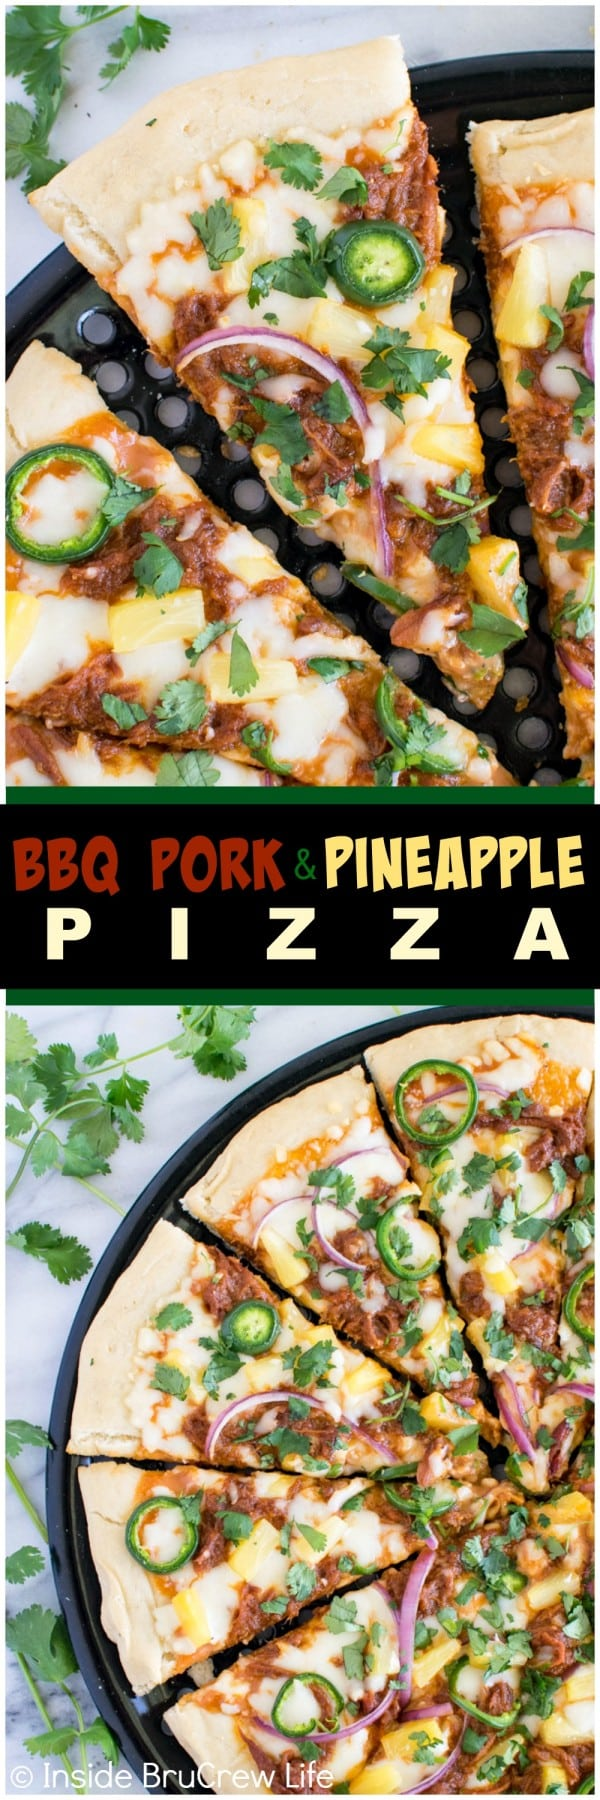 BBQ Pork Pineapple Pizza - pineapple and jalapeño add a sweet & spicy flair to this awesome grilled pizza. Great summer dinner recipe! #99DaysofBBQ #sponsored